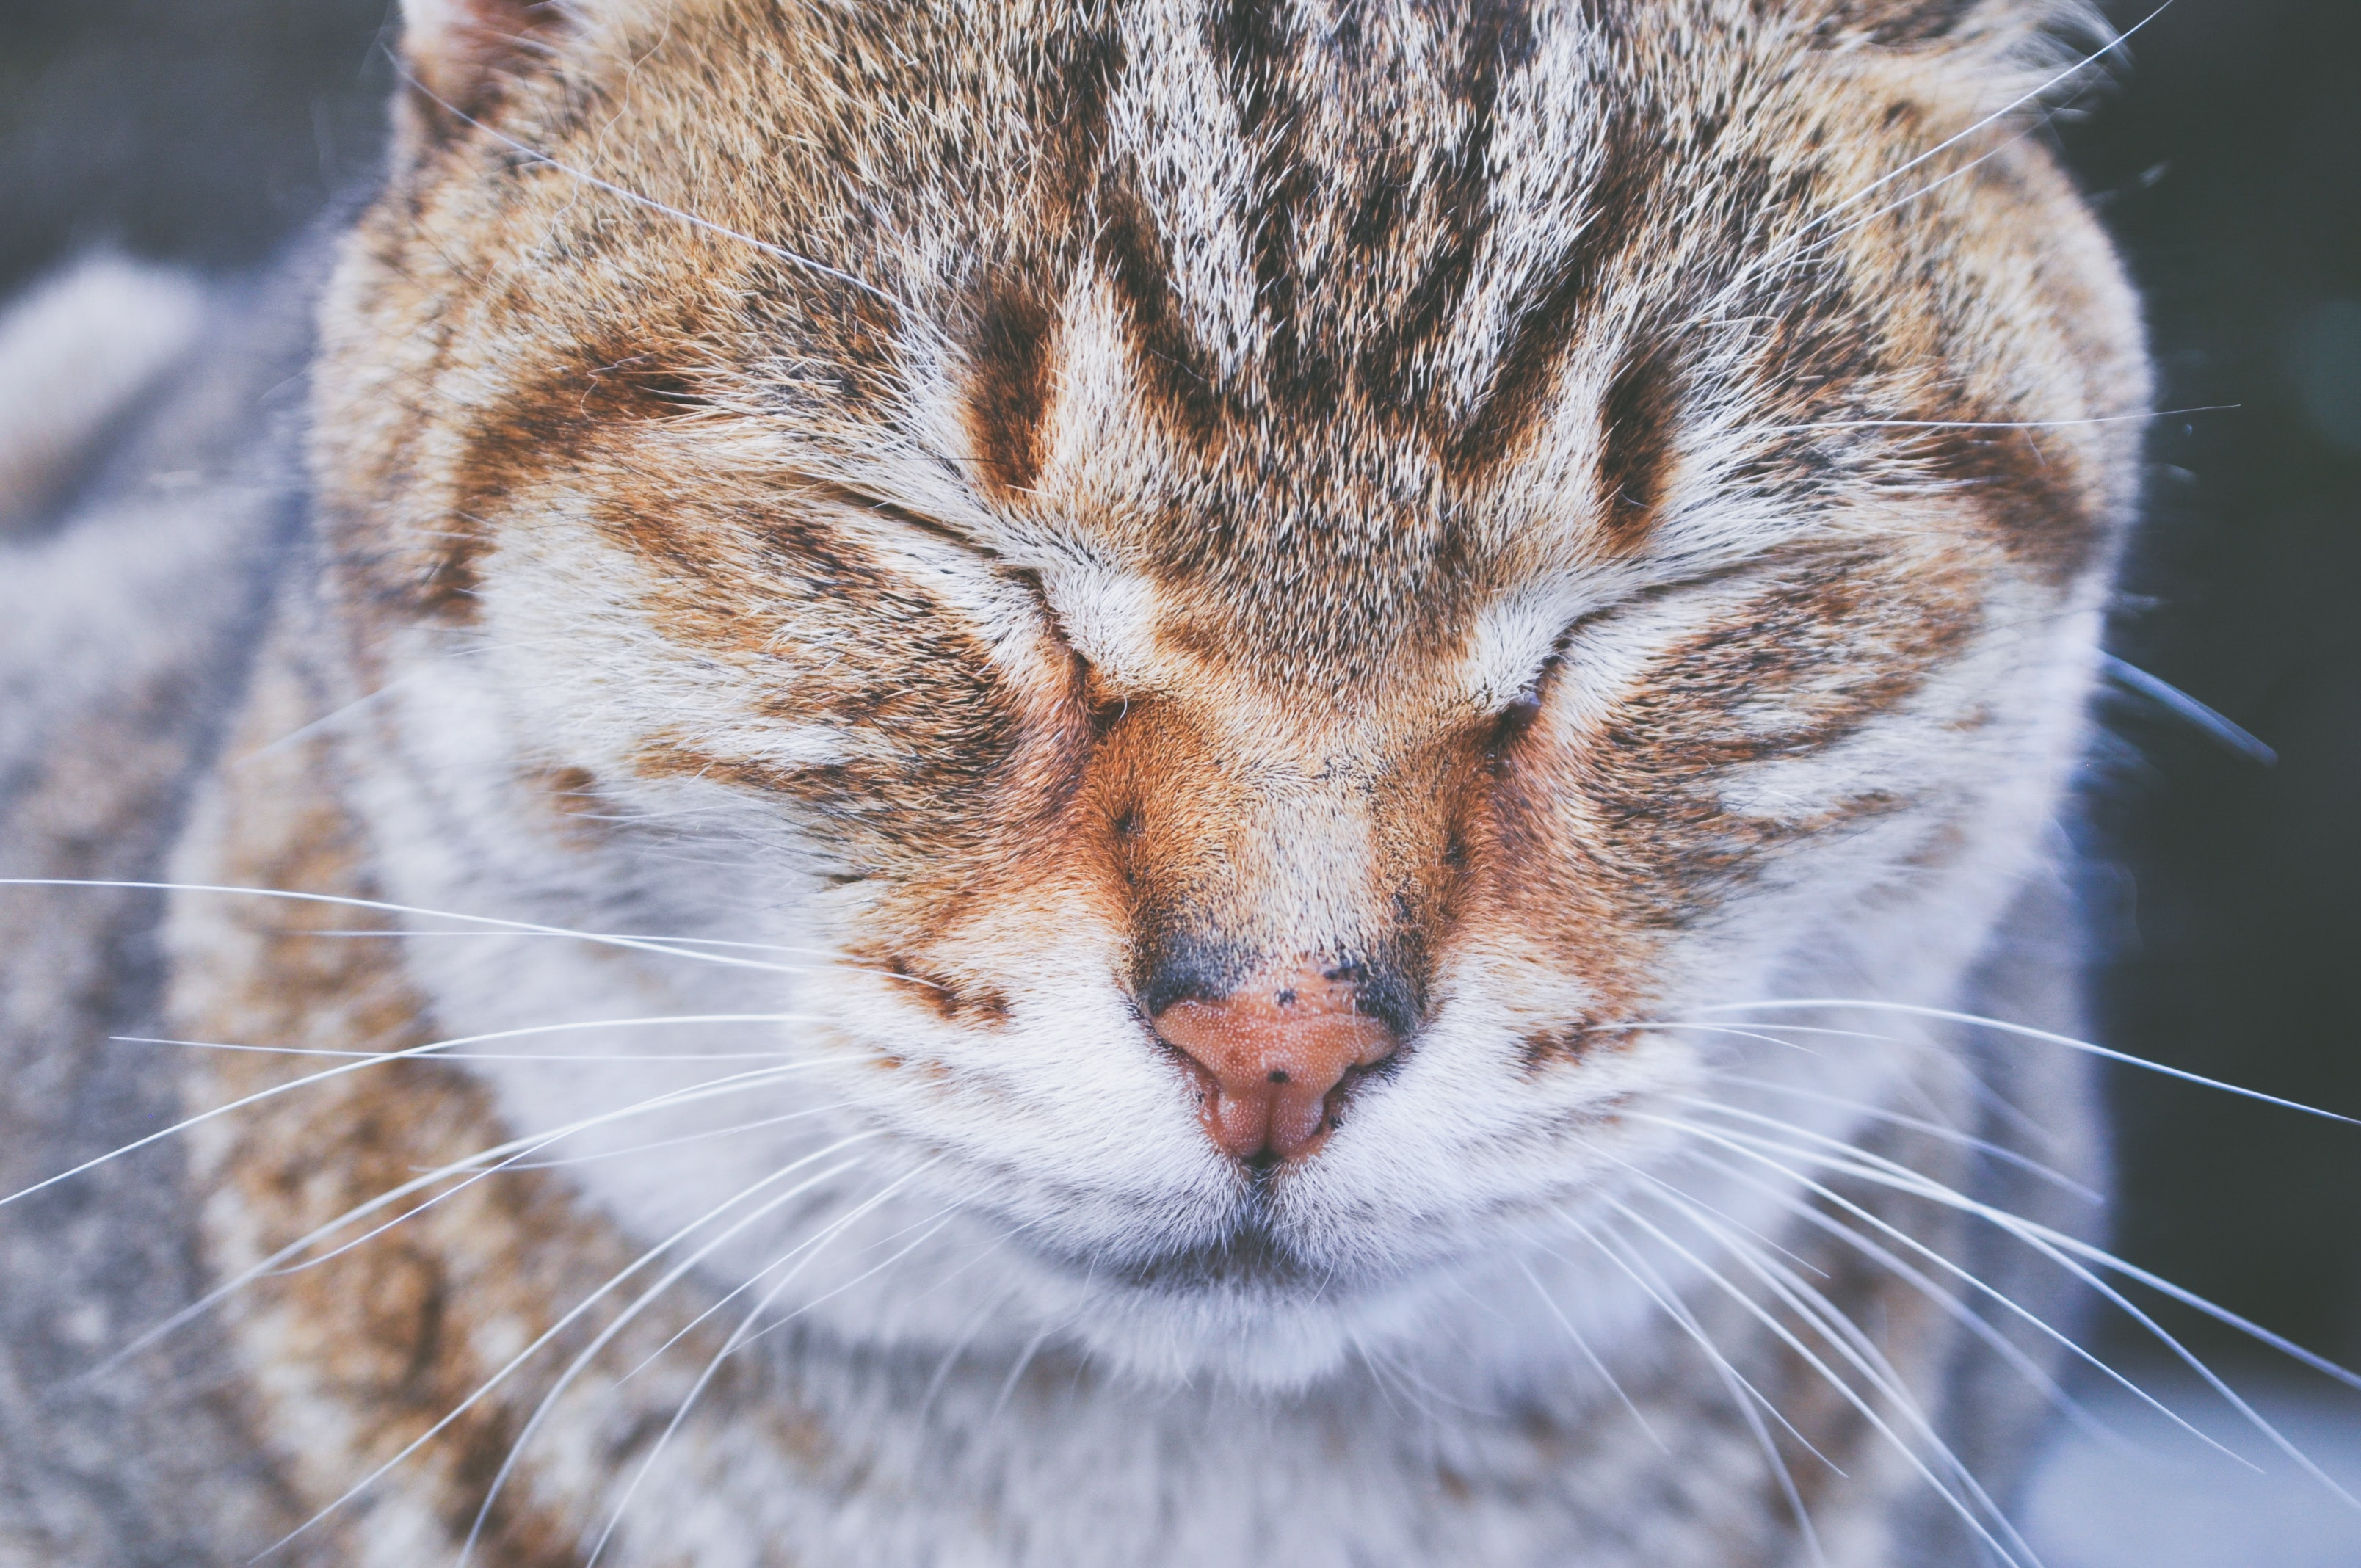 Close-up of a tabby cat screwing up its eyes